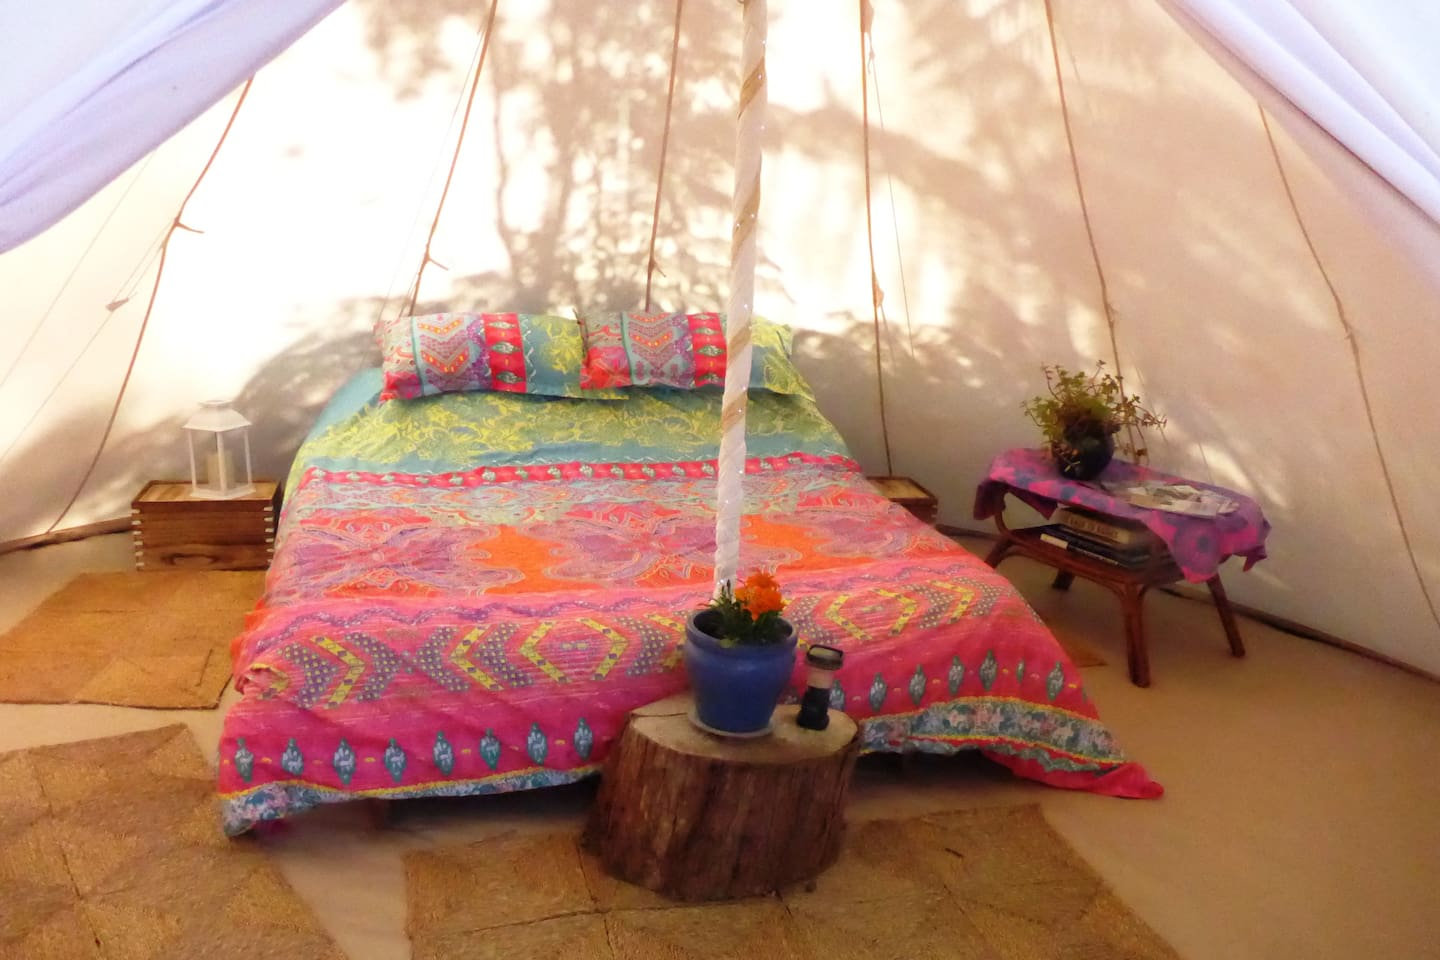 Our Tipi is 5m diameter so there's room for a very comfy queen bed and your luggage.